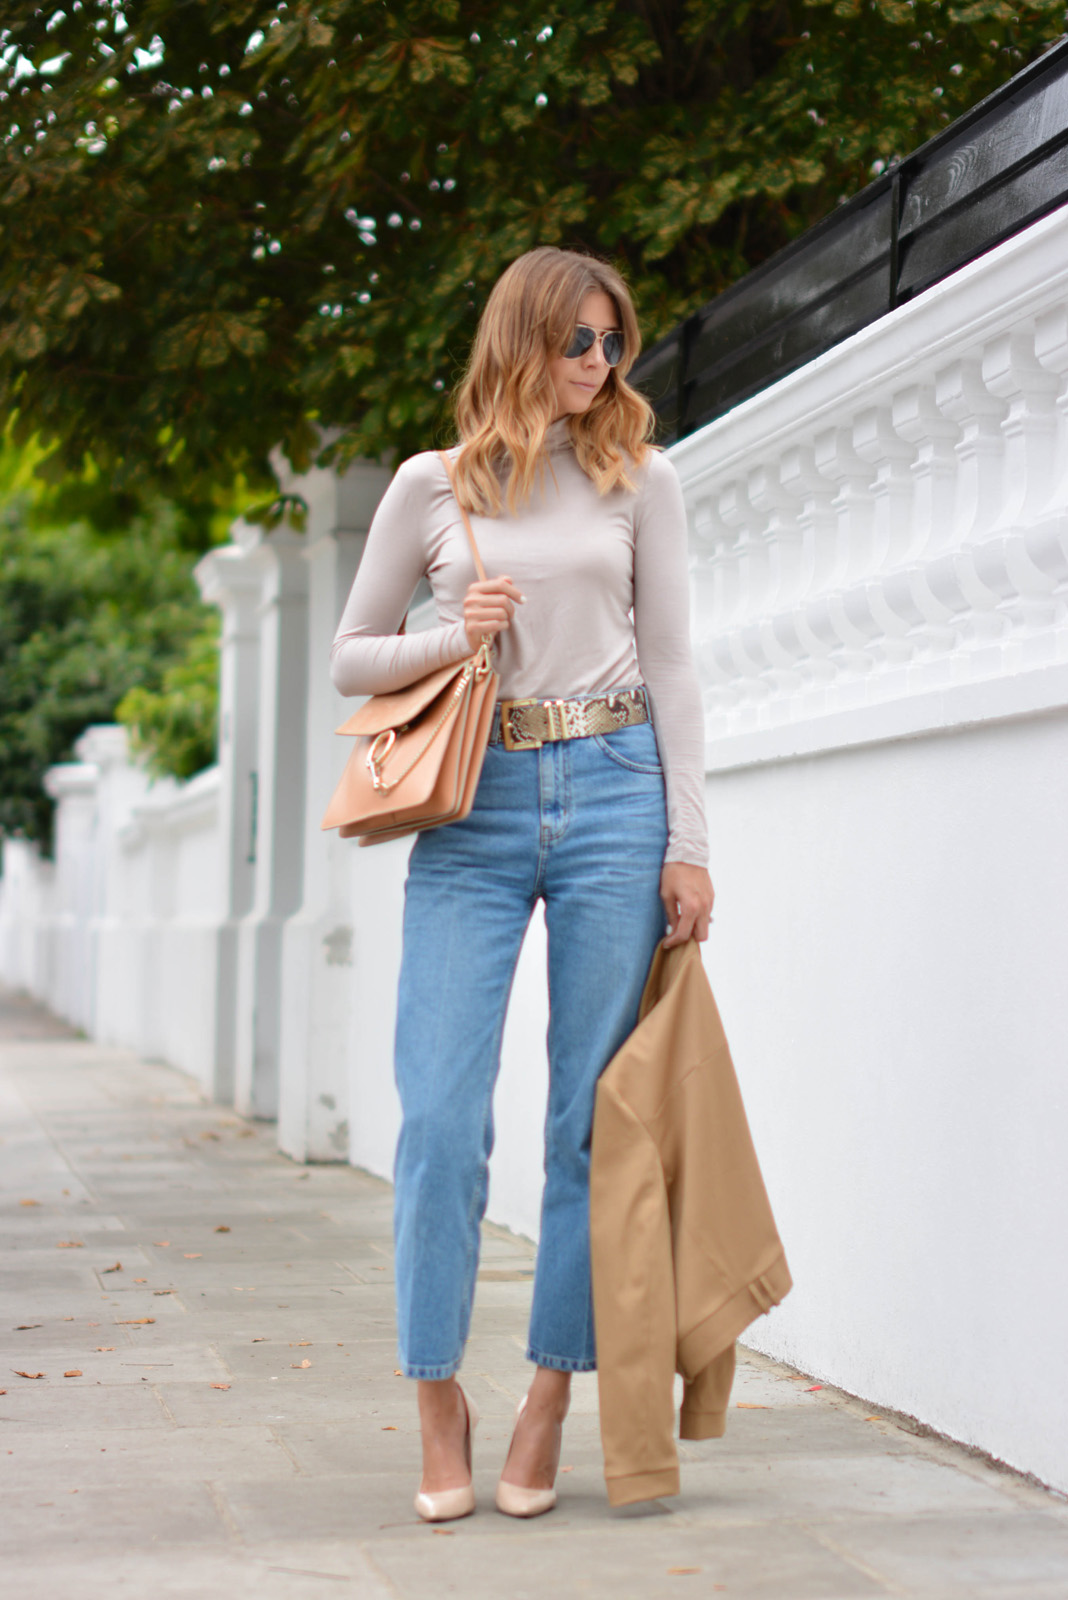 EJSTYLE wears Chloe Faye bag medium in Misty Beige, snakeskin belt, taupe roll neck top, light wash wide leg Topshop jeans, camel jacket, nude pointed heels, aviator sunglasses